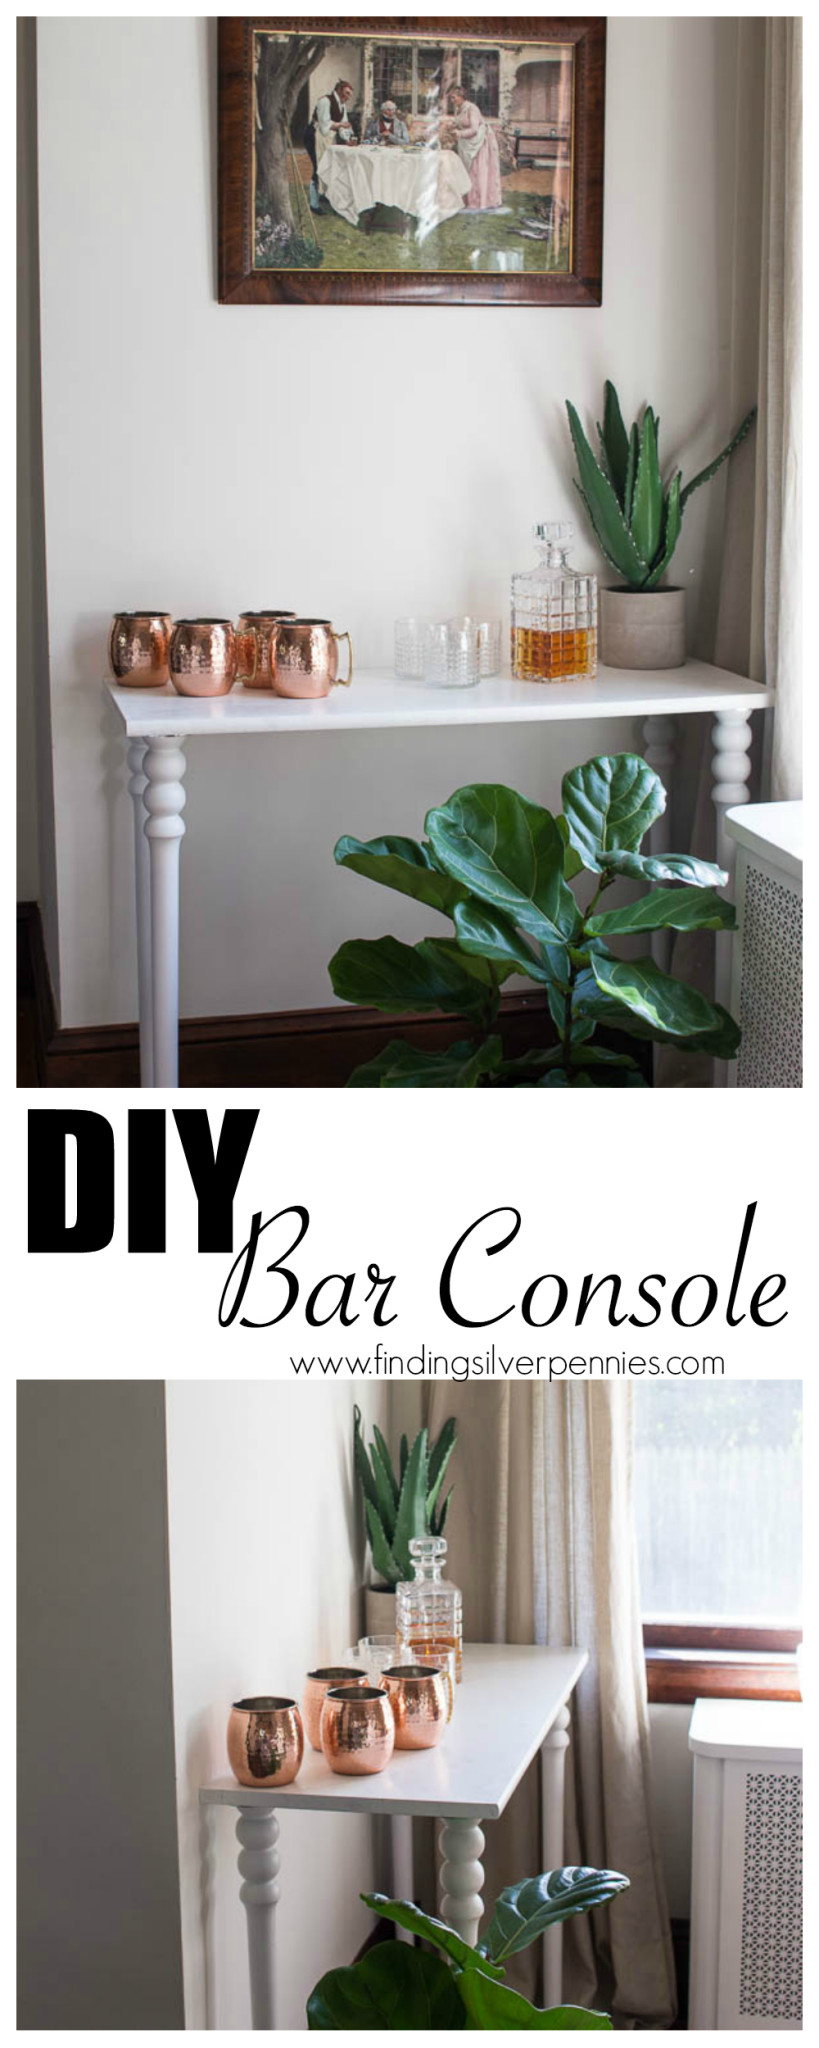 DIY Bar Console with a Faux Marble Finish by Finding Silver Pennies